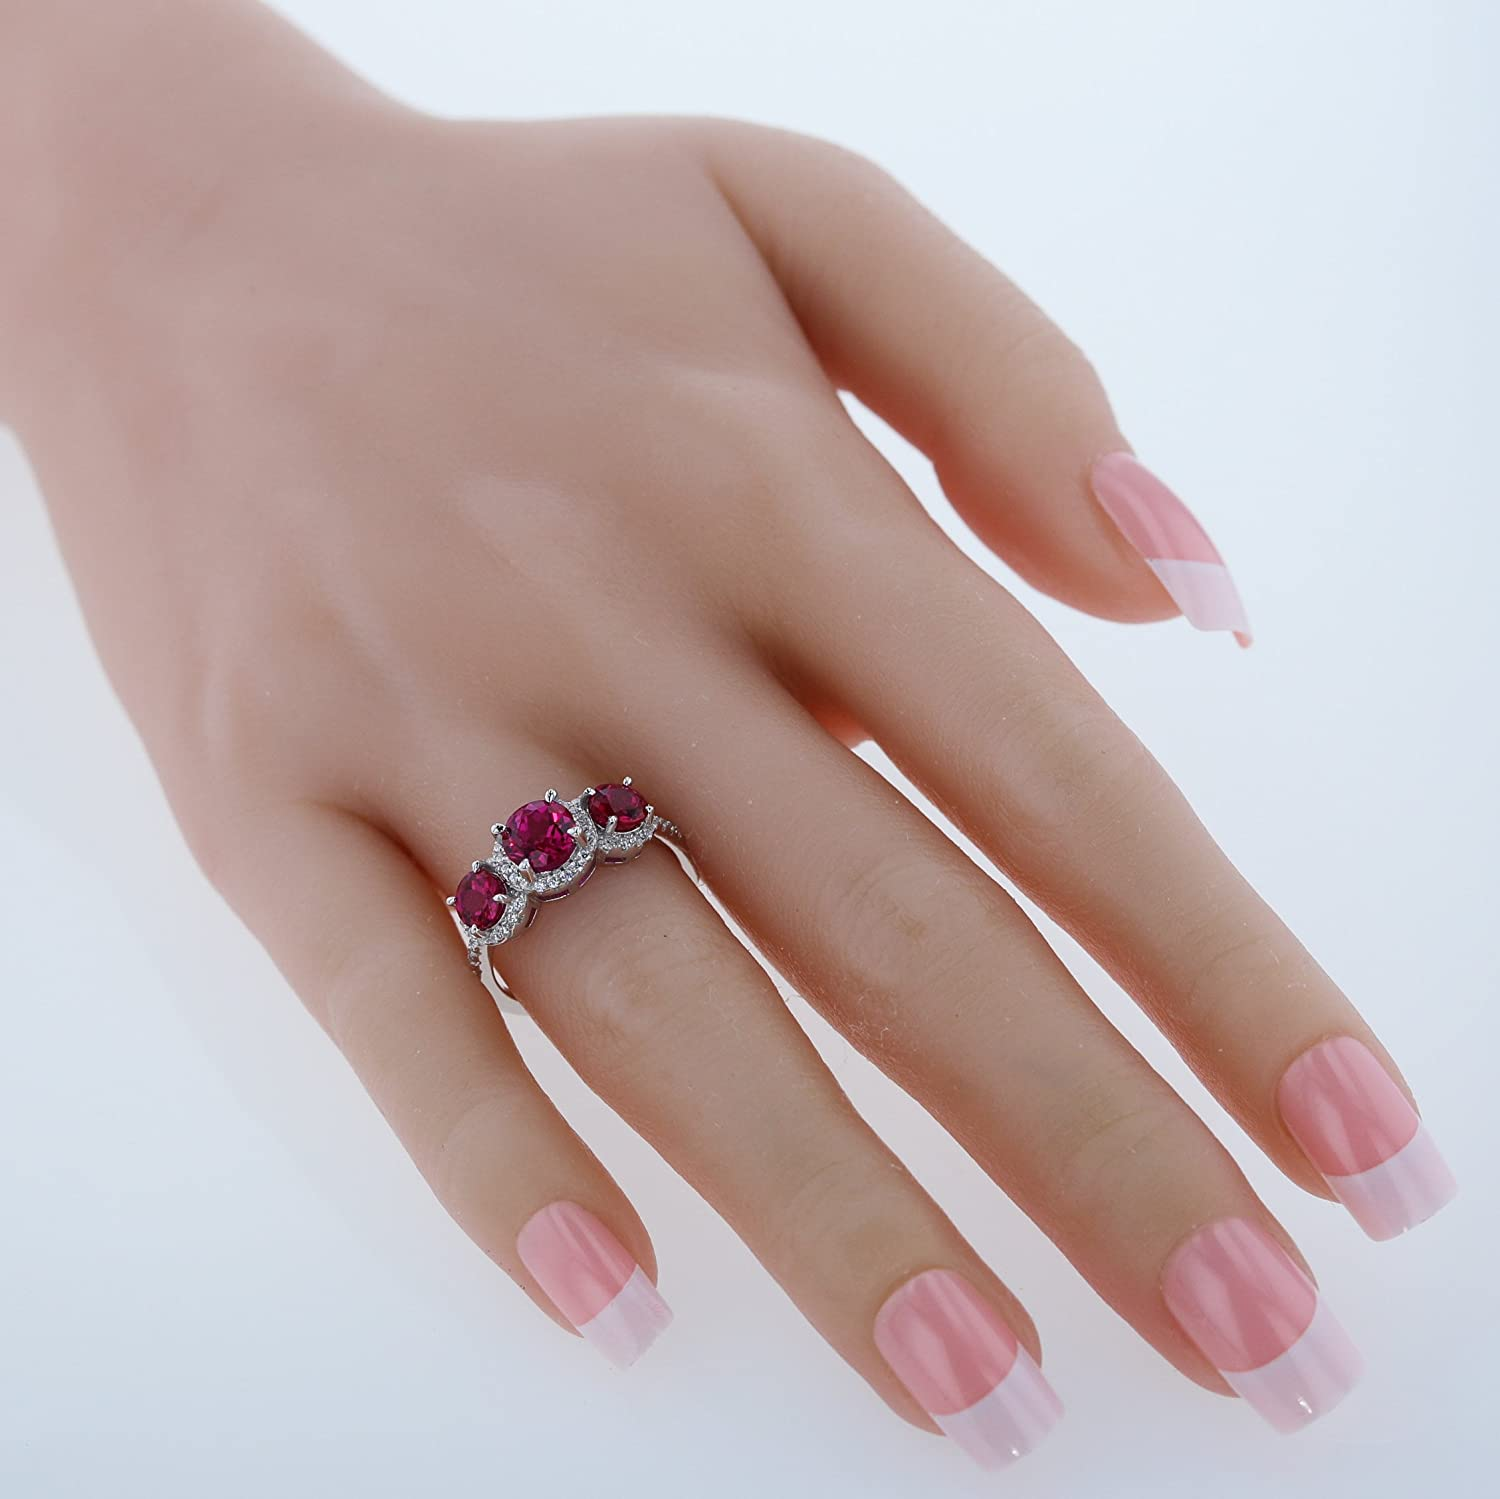 Sterling Silver Round Cut Three-Stone Gemstone Halo Ring Sizes 5 to 9